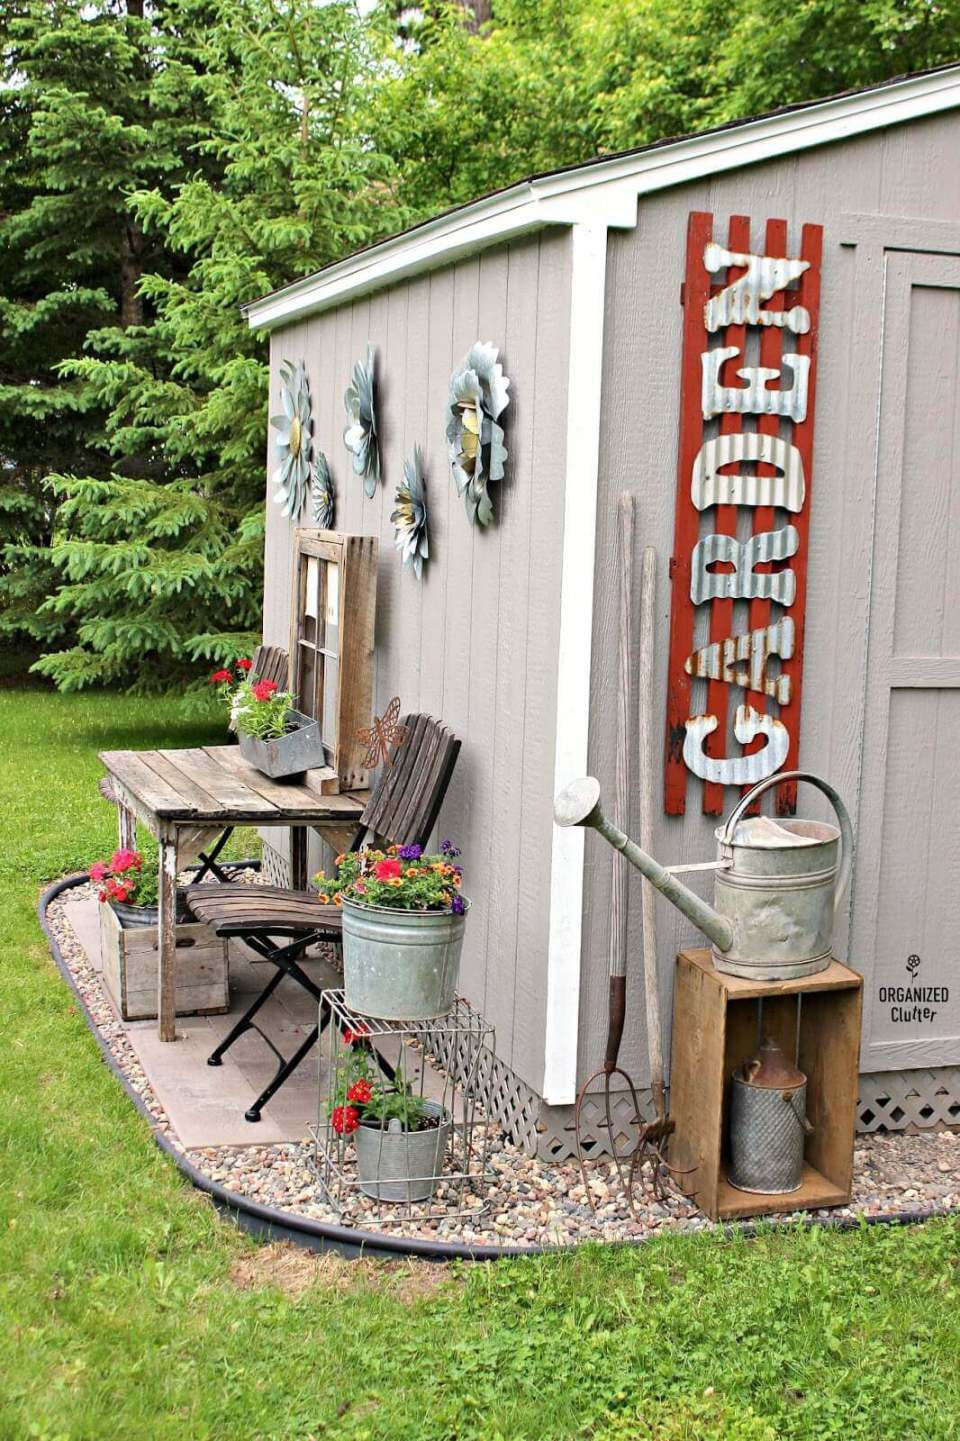 Bold Corrugated Letters on the Shed   Funny DIY Garden Sign Ideas